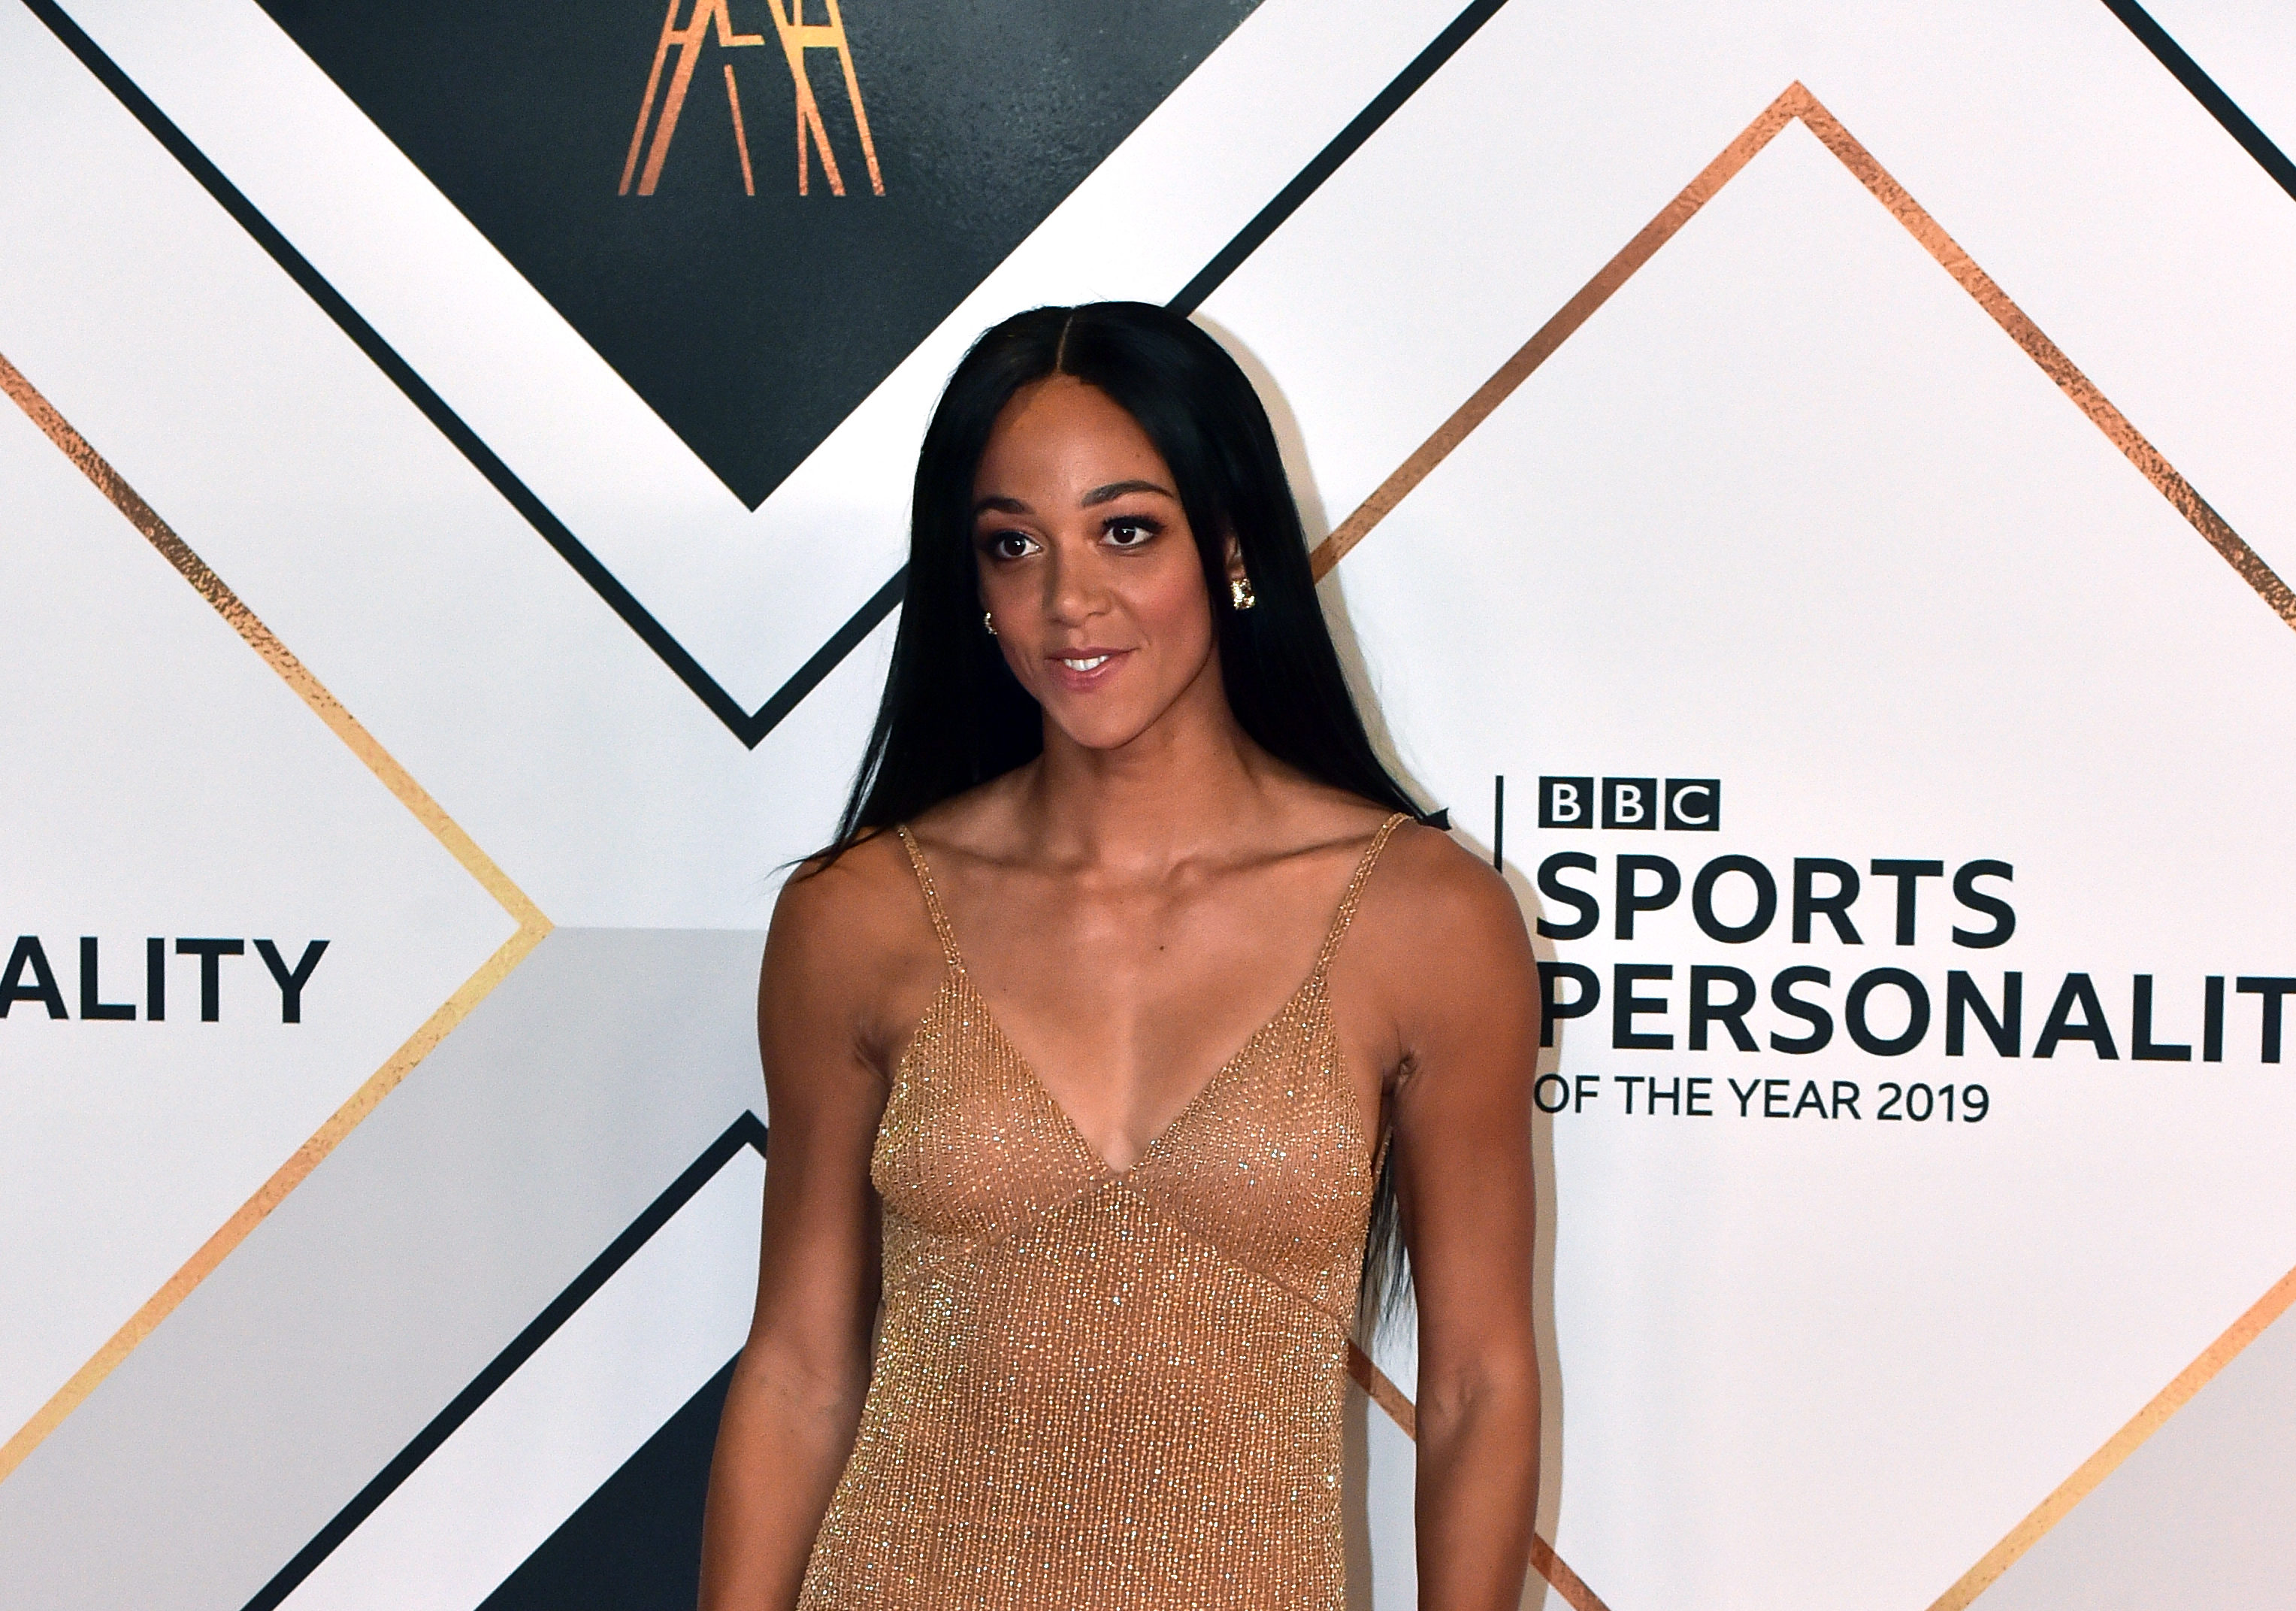 Katarina Johnson-Thompson. Picture by Kenny Elrick